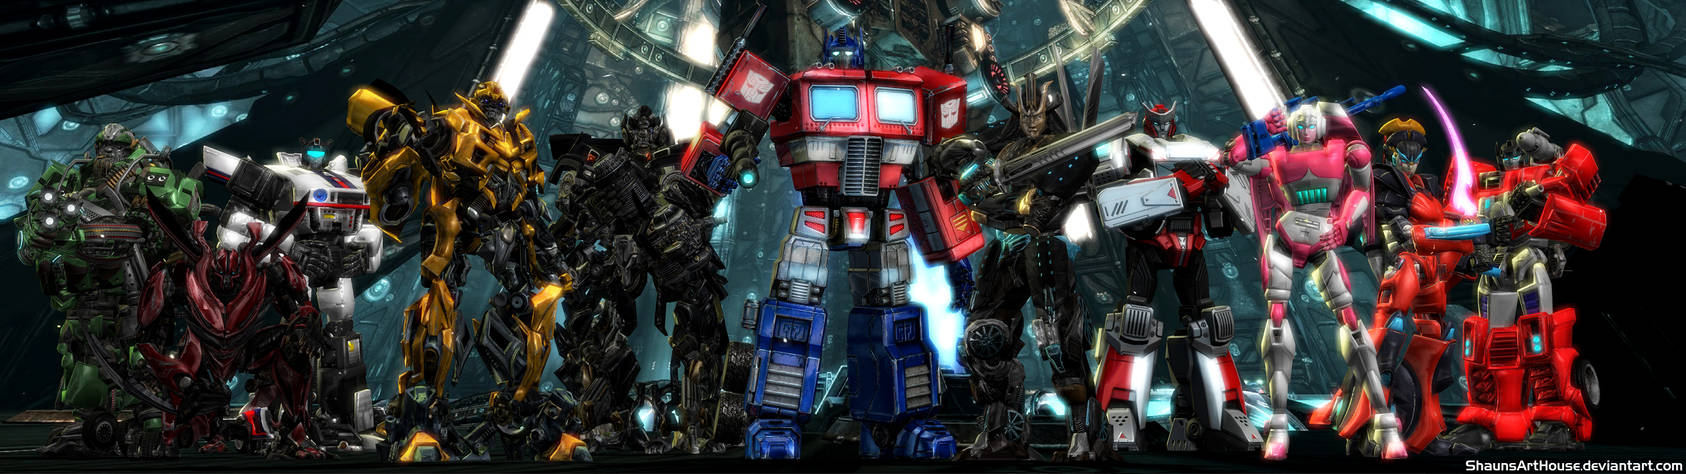 Transformers G1 Autobots Dual Screen Wallpaper By